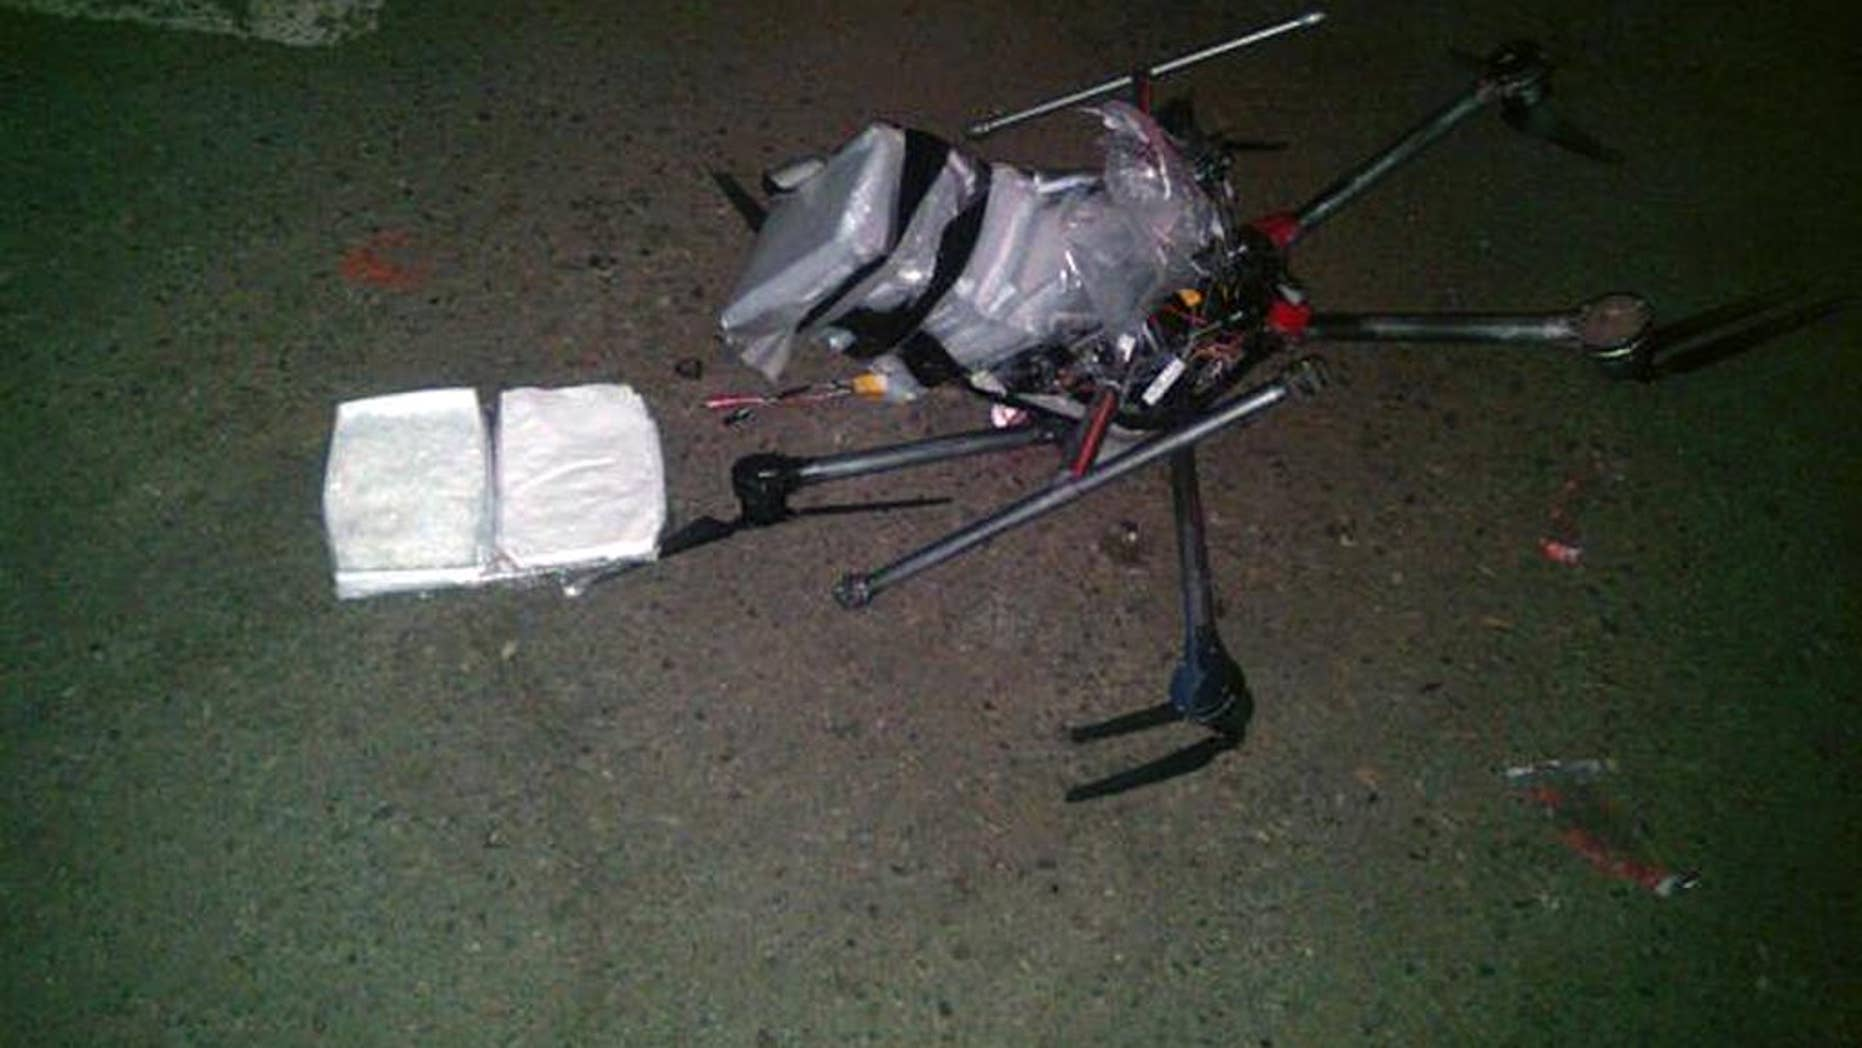 In this image released by the Tijuana Municipal Police on Wednesday Jan. 21, 2015, a drone loaded with packages containing methamphetamine lies on the ground after it crashed into a supermarket parking lot in the city of Tijuana on Tuesday Jan. 20, 2015. According to police, six packets of the drug, weighing more than six pounds, were taped to the six-propeller remote-controlled aircraft. Authorities are investigating where the flight originated and who was controlling it. He said it was not the first time they had seen drones used for smuggling drugs across the border. Other innovative efforts have included catapults, ultralight aircraft and tunnels. (AP Photo/Secretaria de Seguridad Pública Municipal de Tijuana)